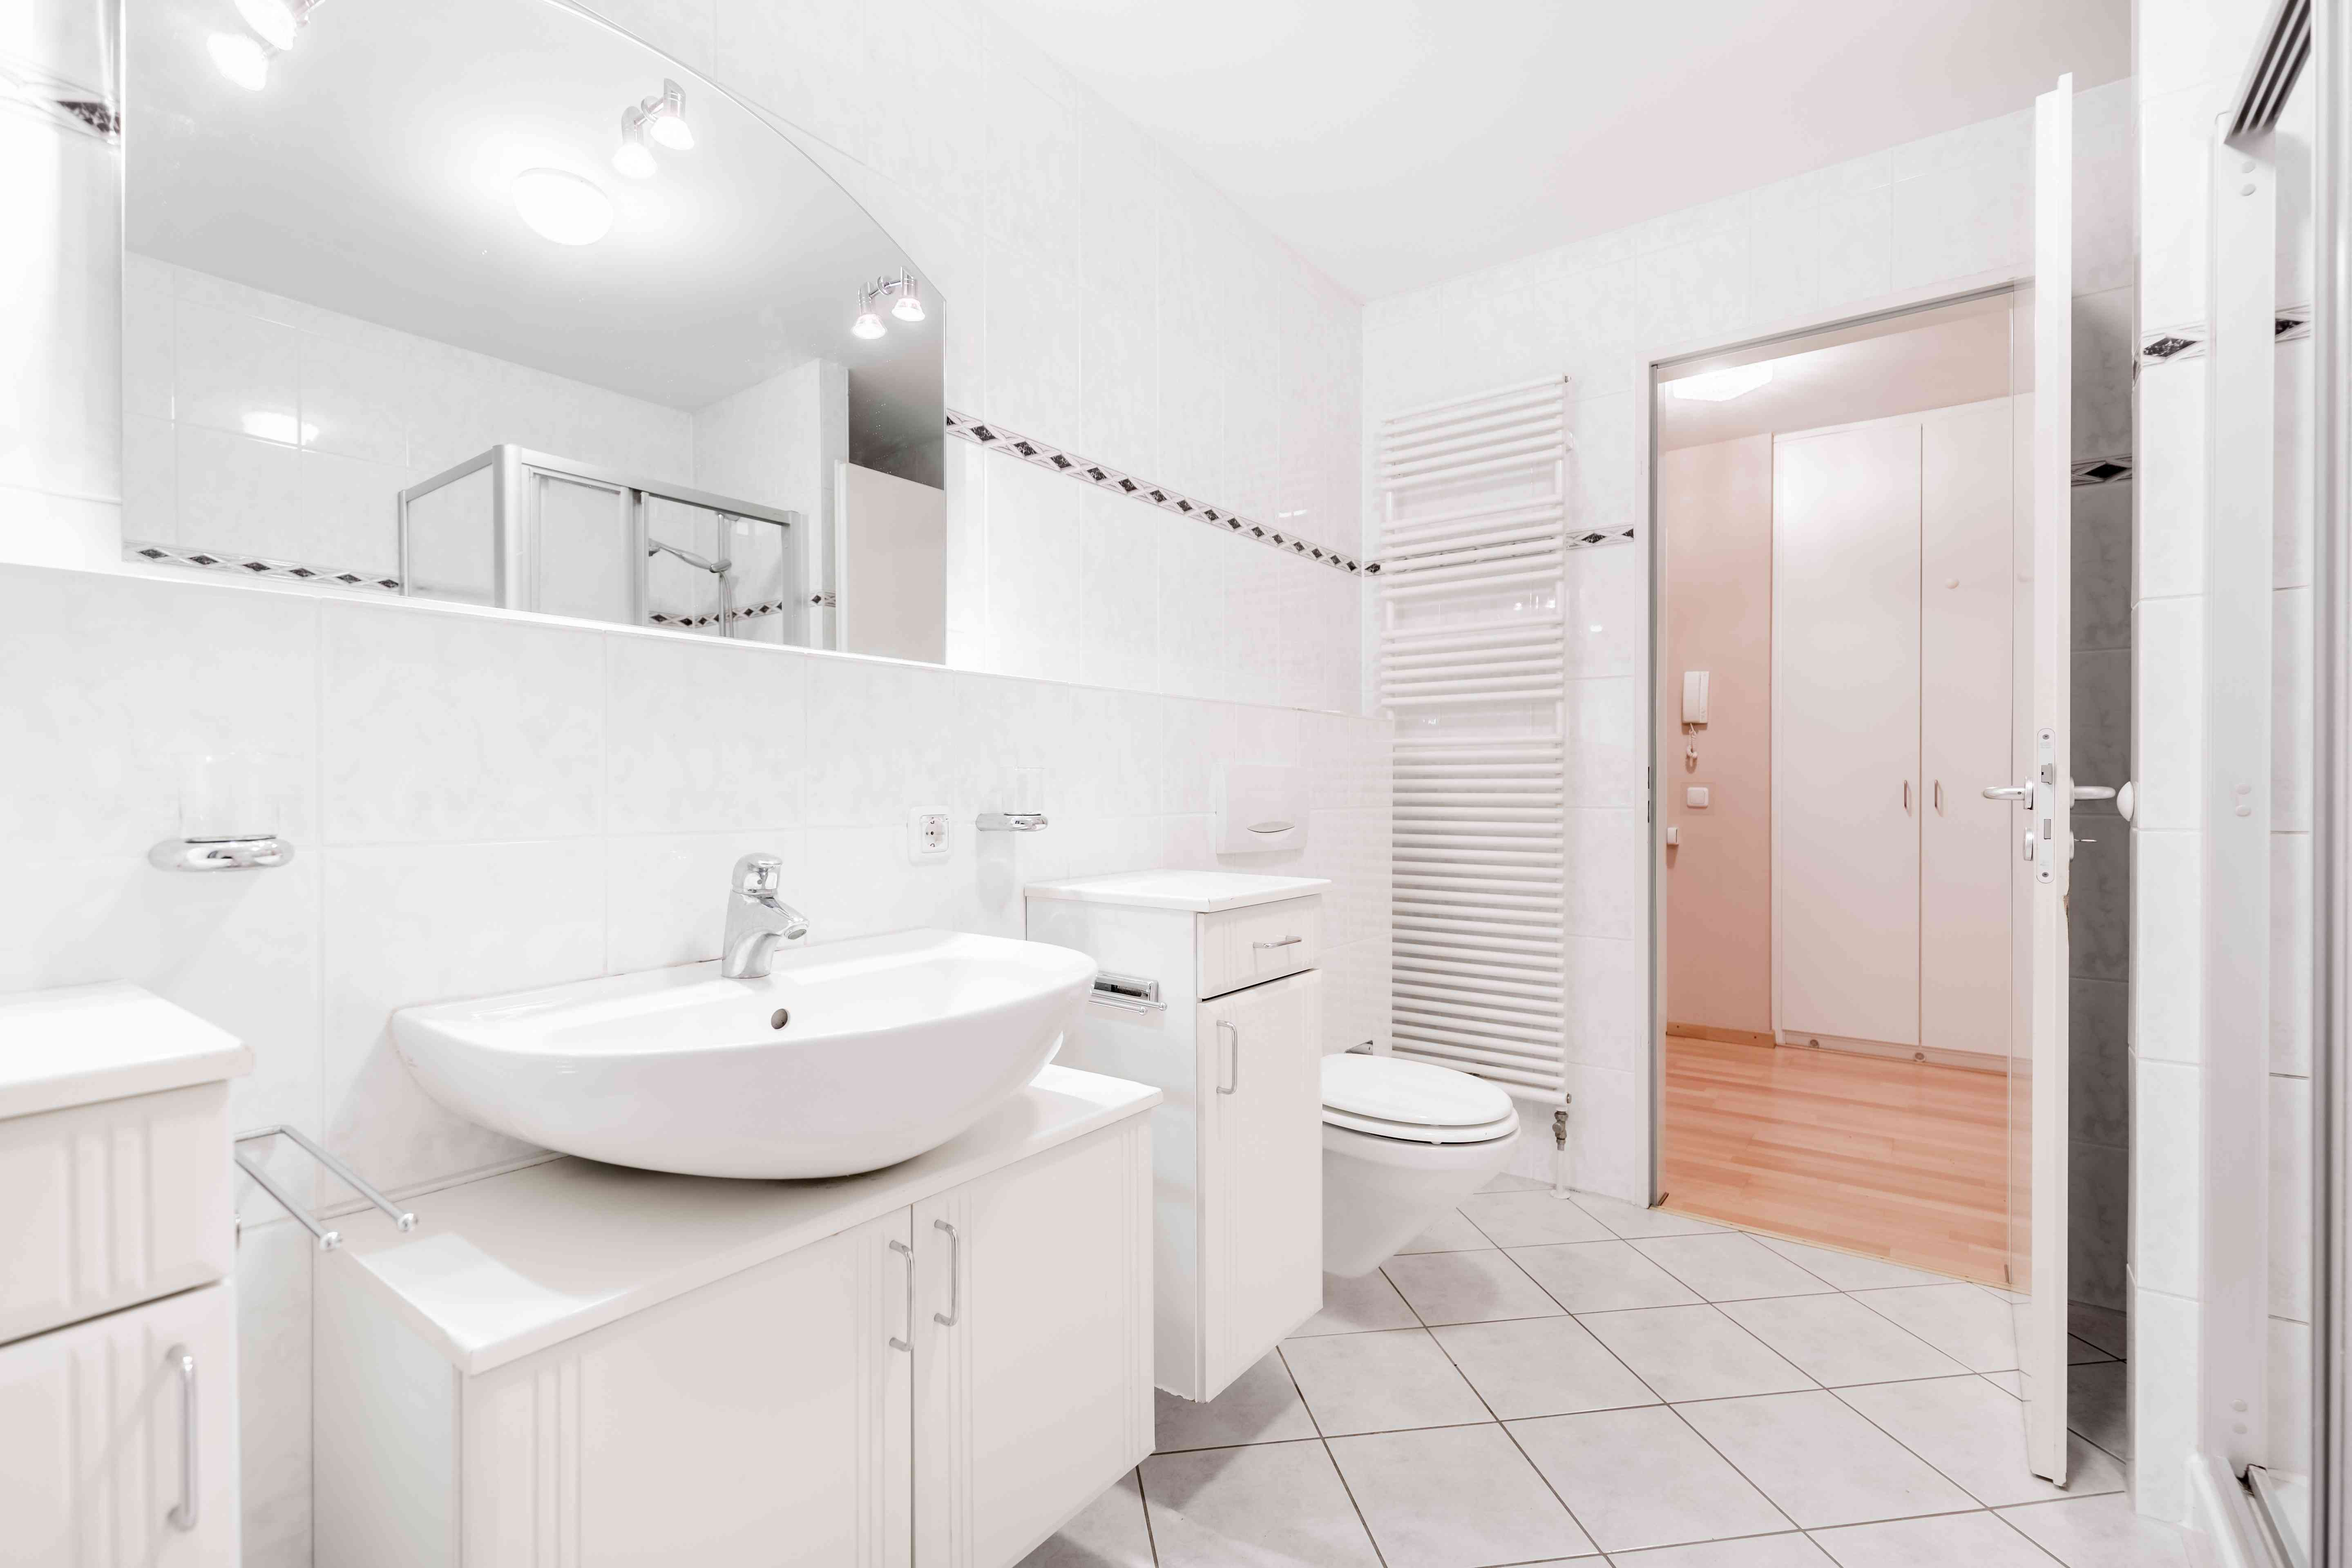 A bathroom oufitted with many cabinets